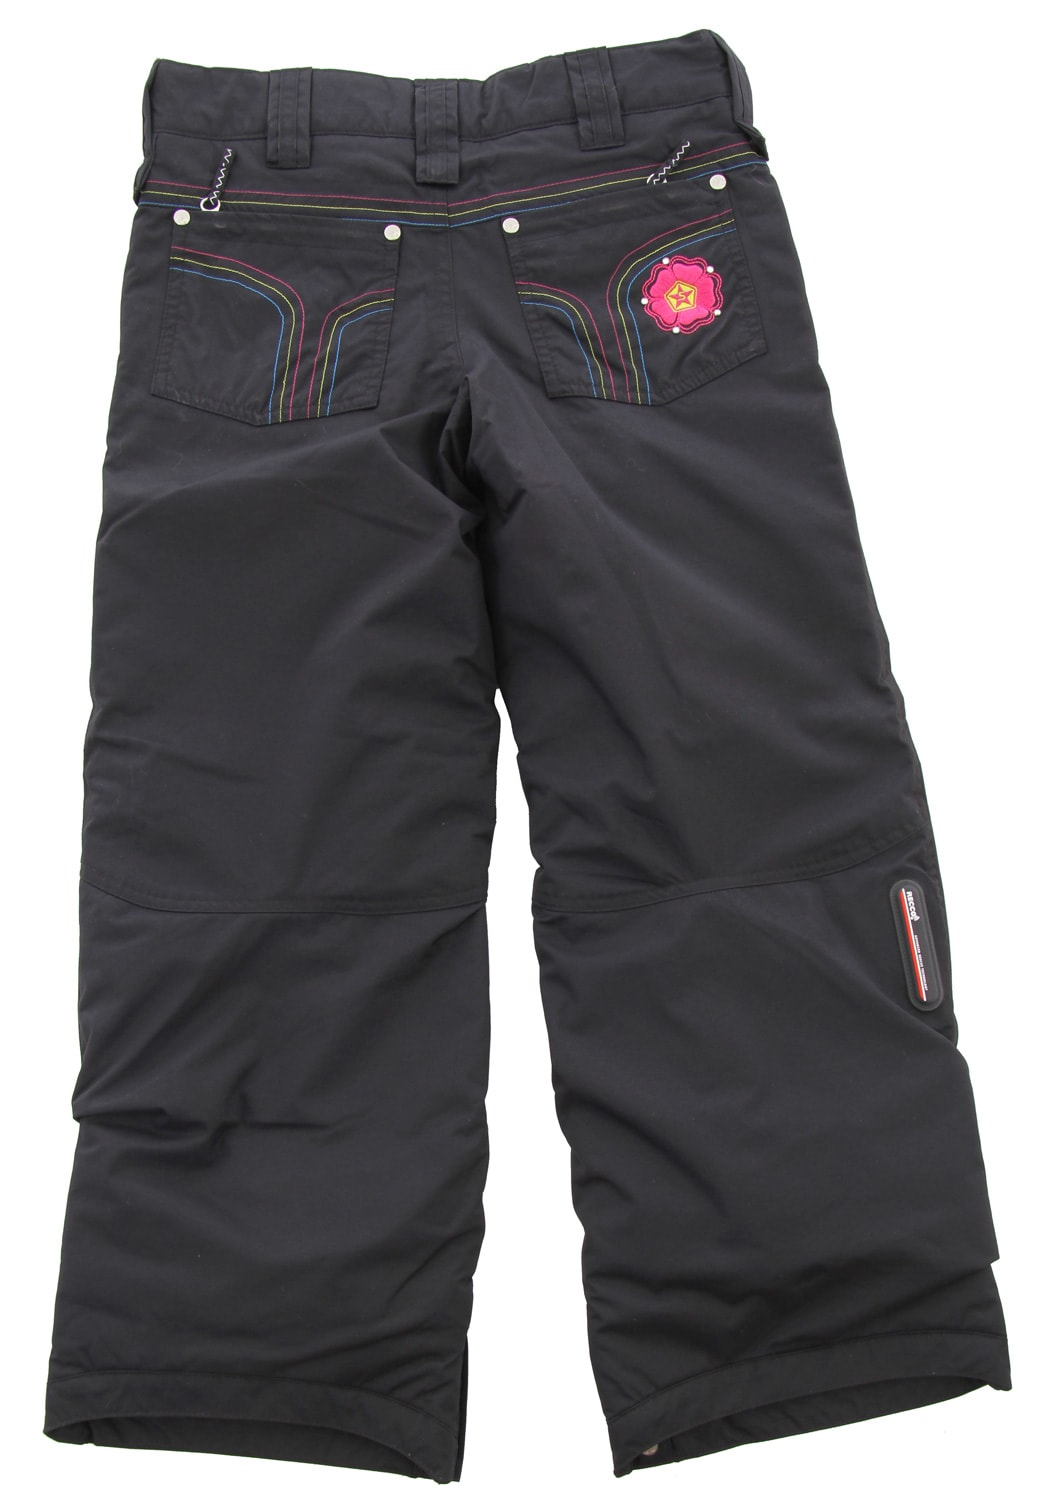 Sessions Star Snowboard Pants Girls